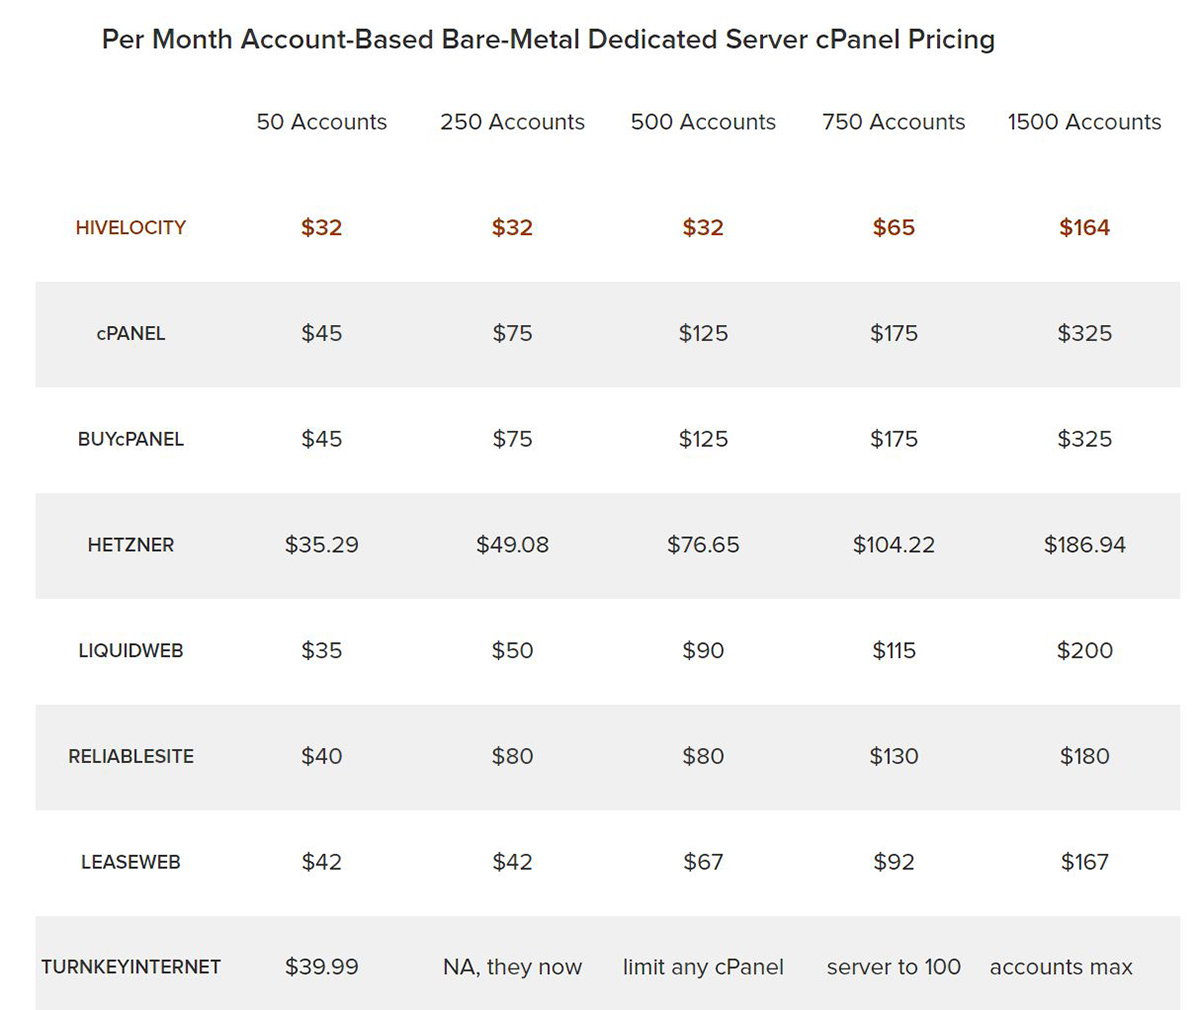 Comparison chart showing Hivelocity cPanel prices are lower than seven other competitors